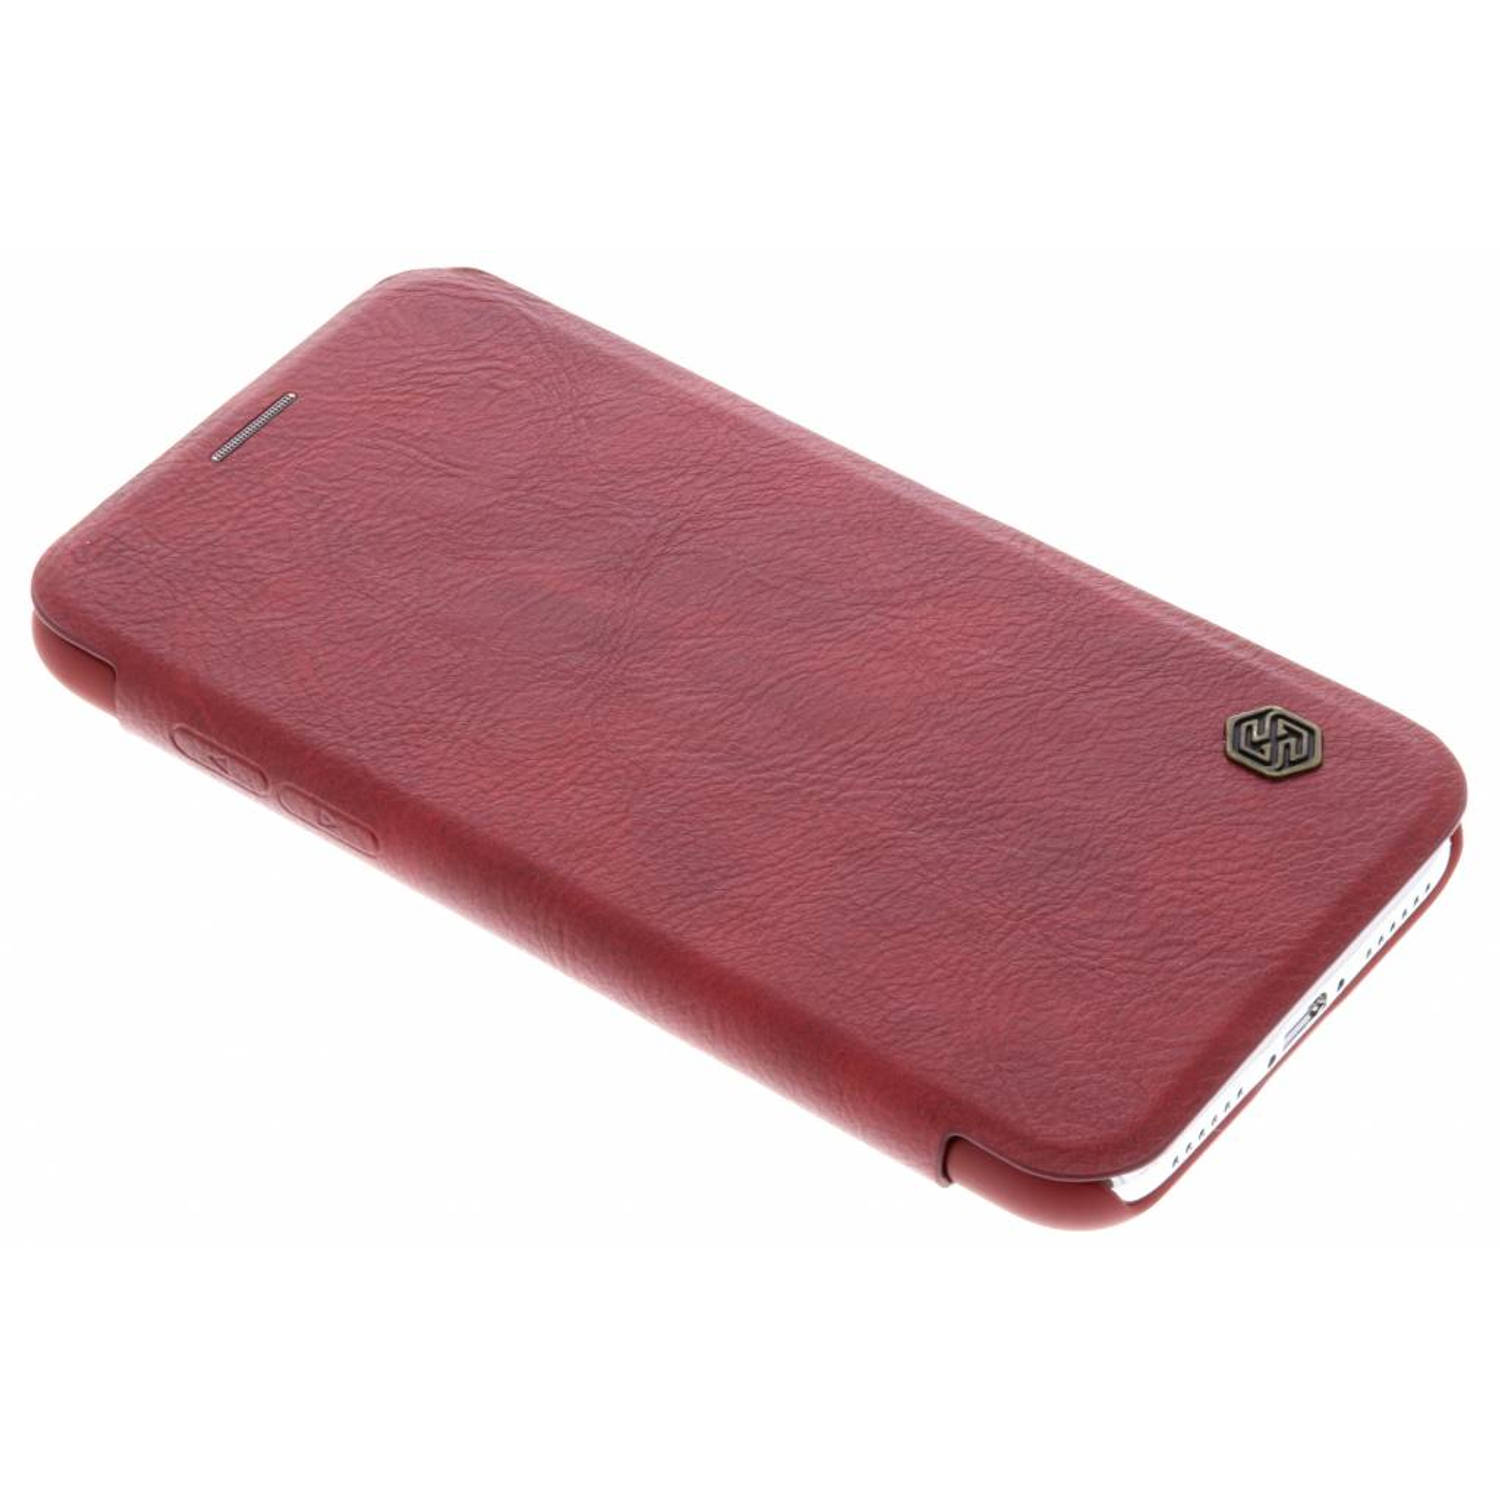 Rode Qin Leather slim booktype hoes voor de iPhone Xs / X